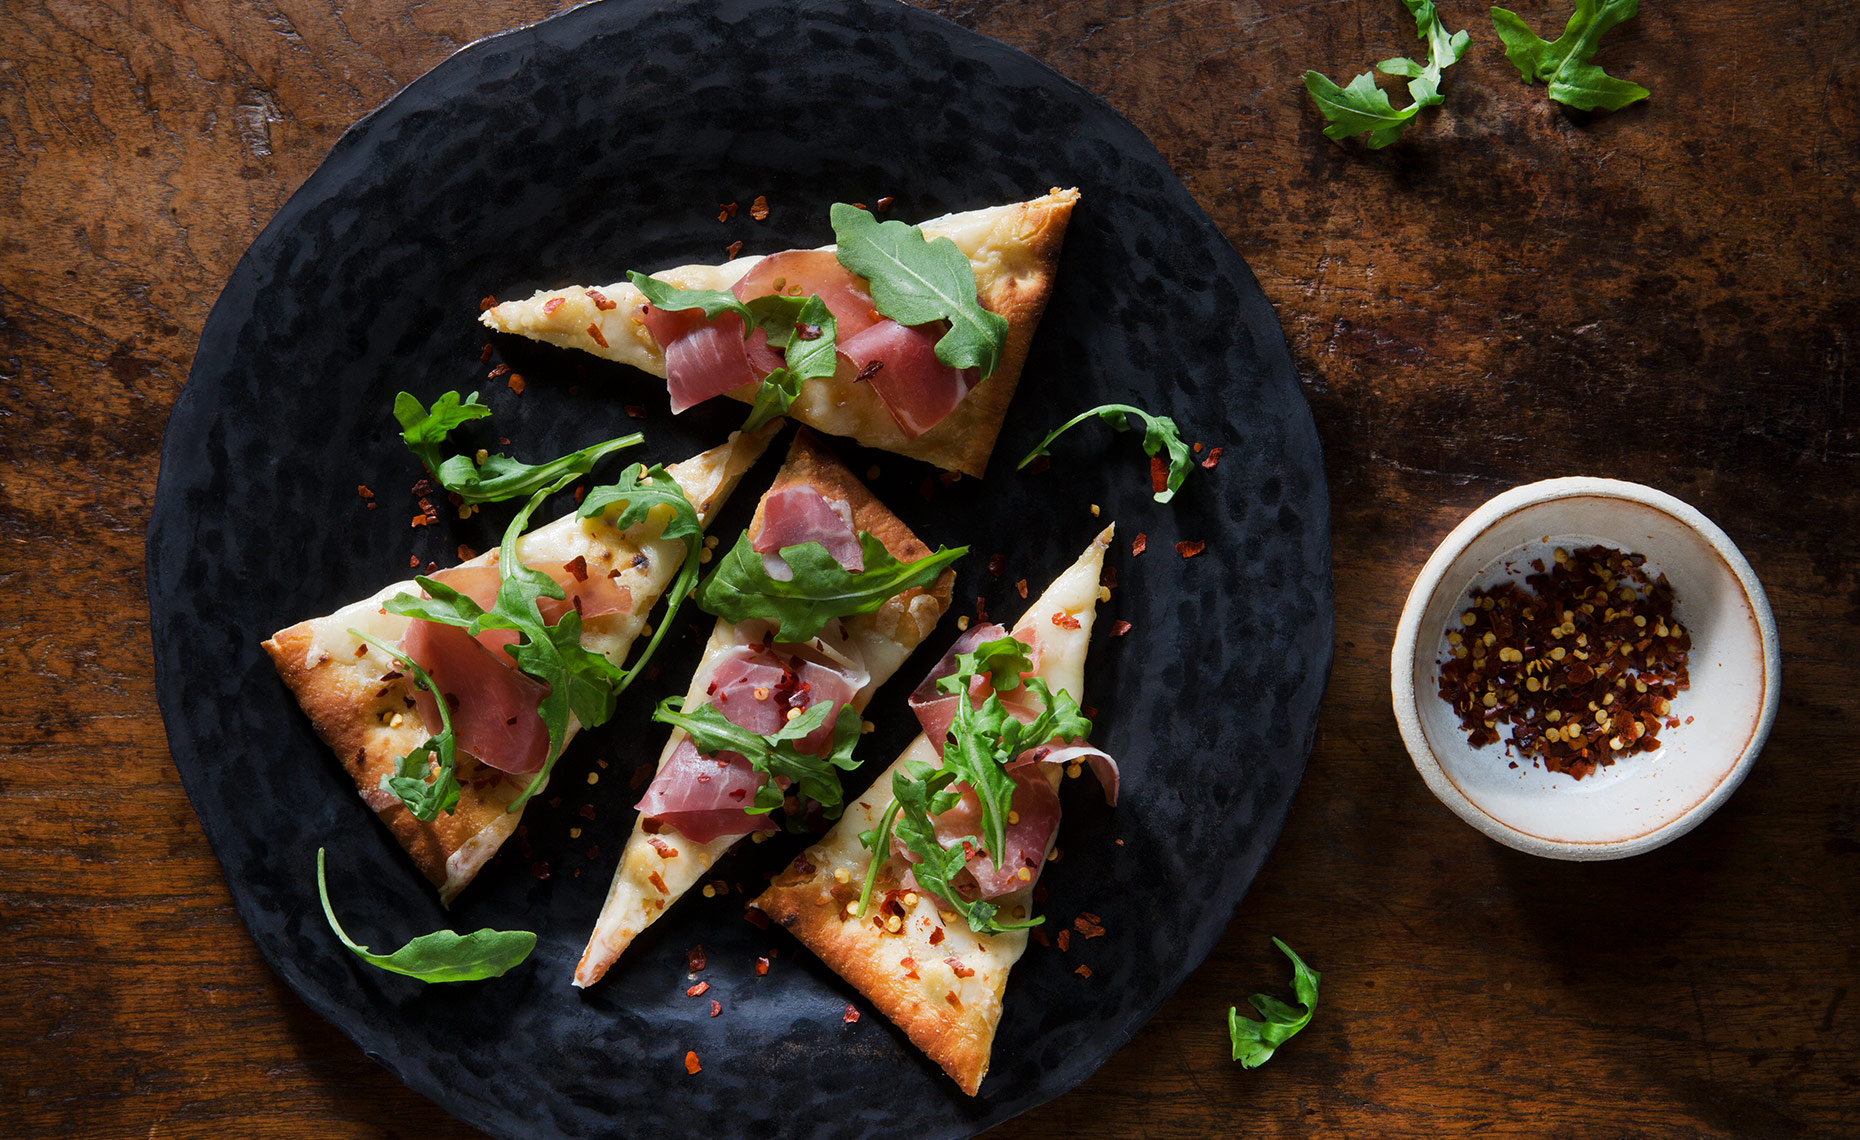 Pizza Slices, Prosciutto Pizza, Rose Hodges Food Photography, San Francisco